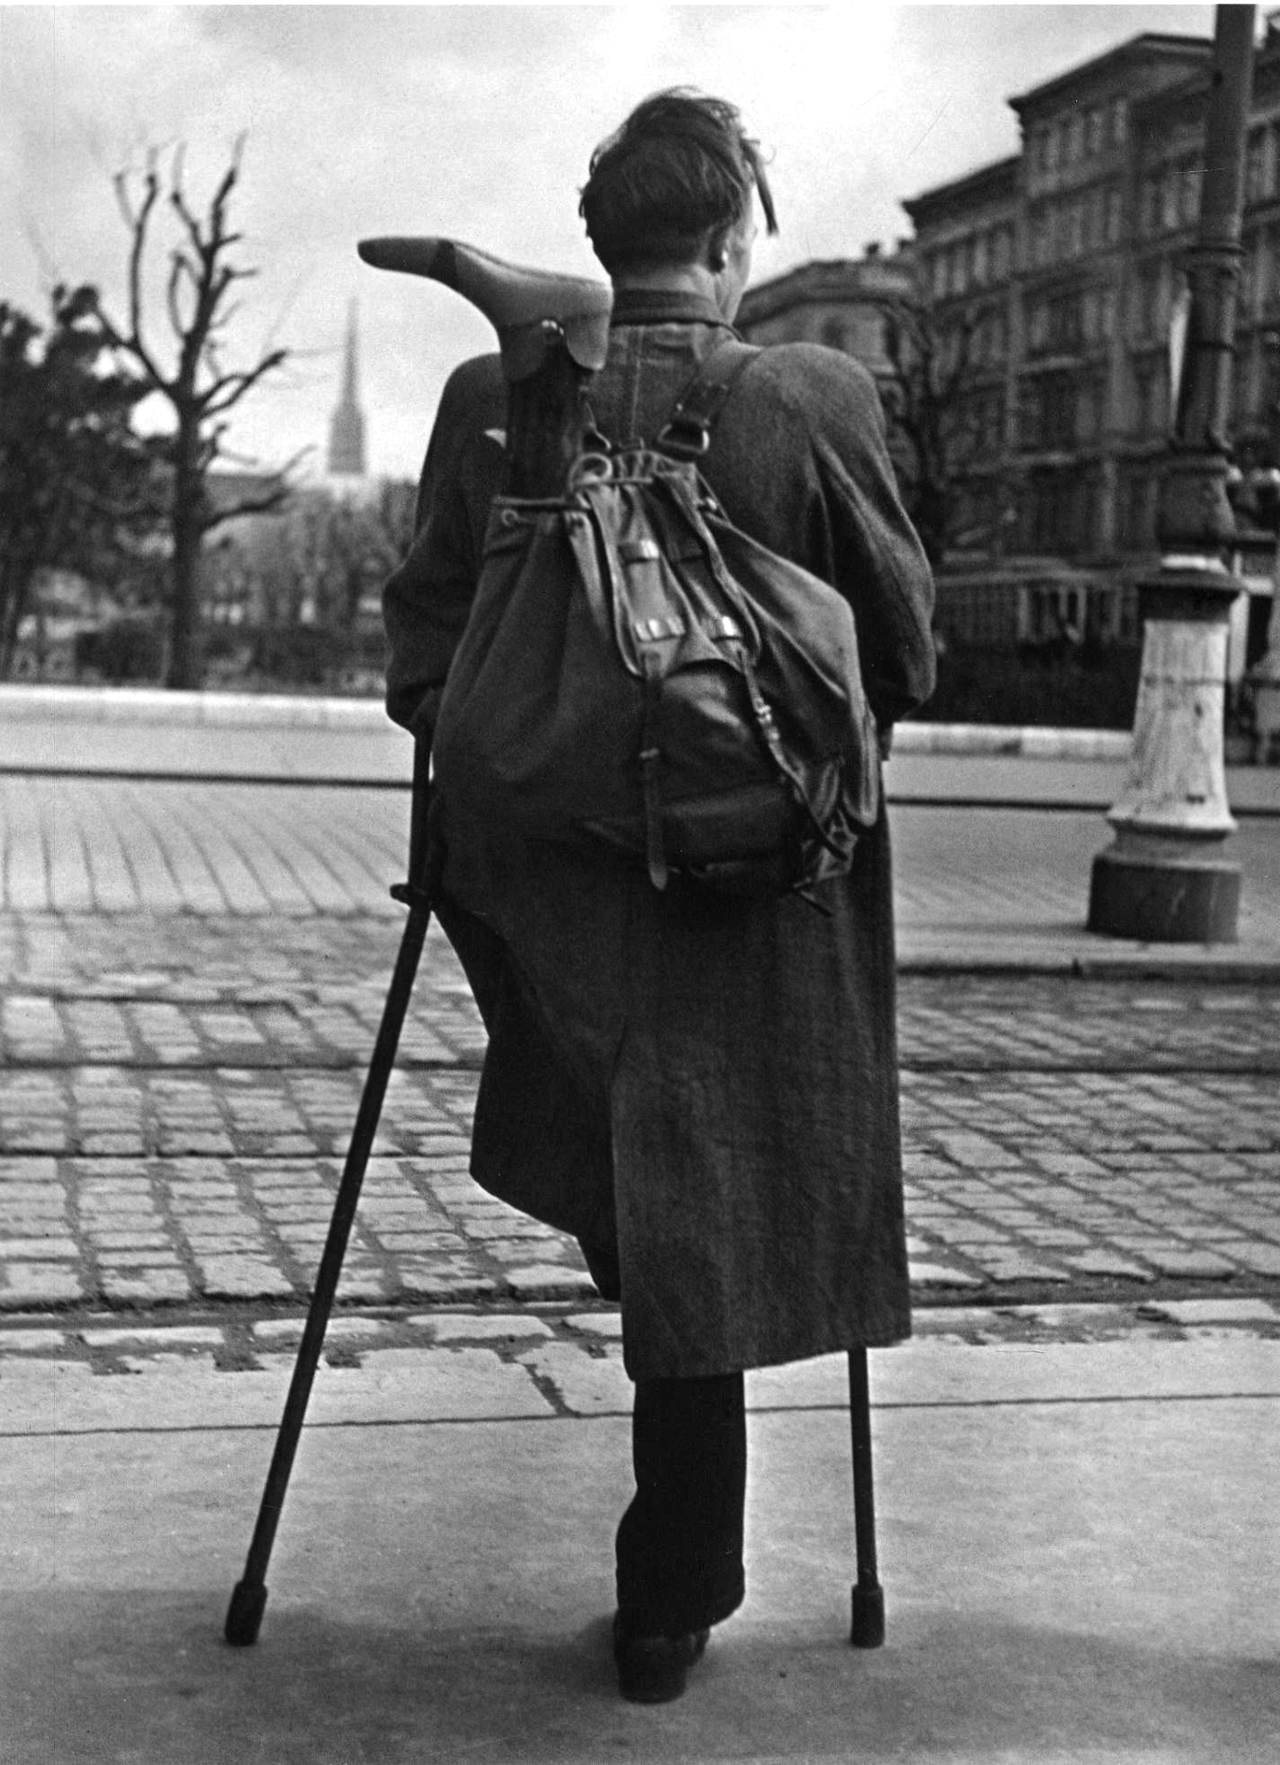 Coming home, Vienna, 1946.